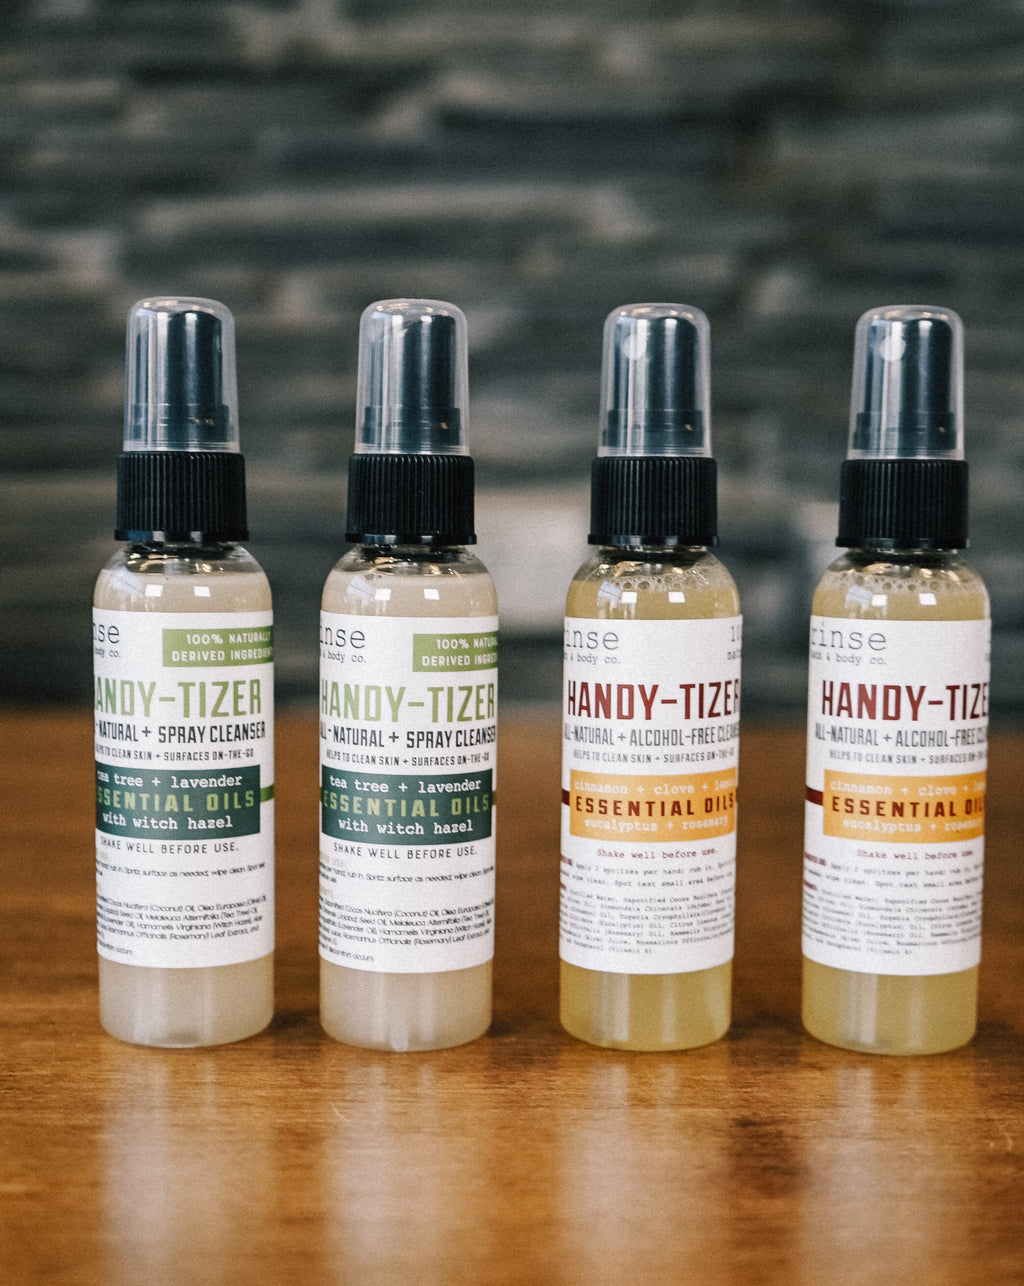 HANDY-TIZER All Natural Spray Cleanser - Provisions Mercantile